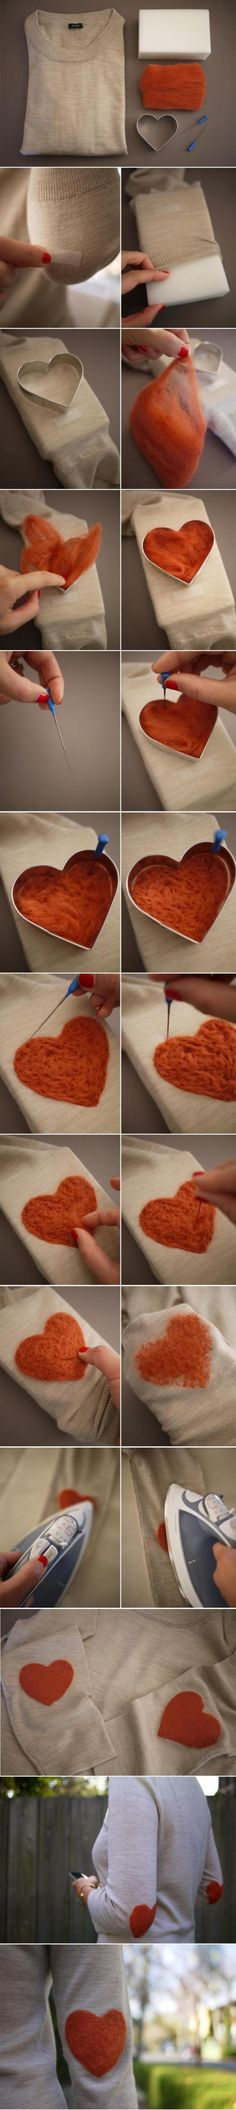 #DIY Felting - this is actually really easy to do...